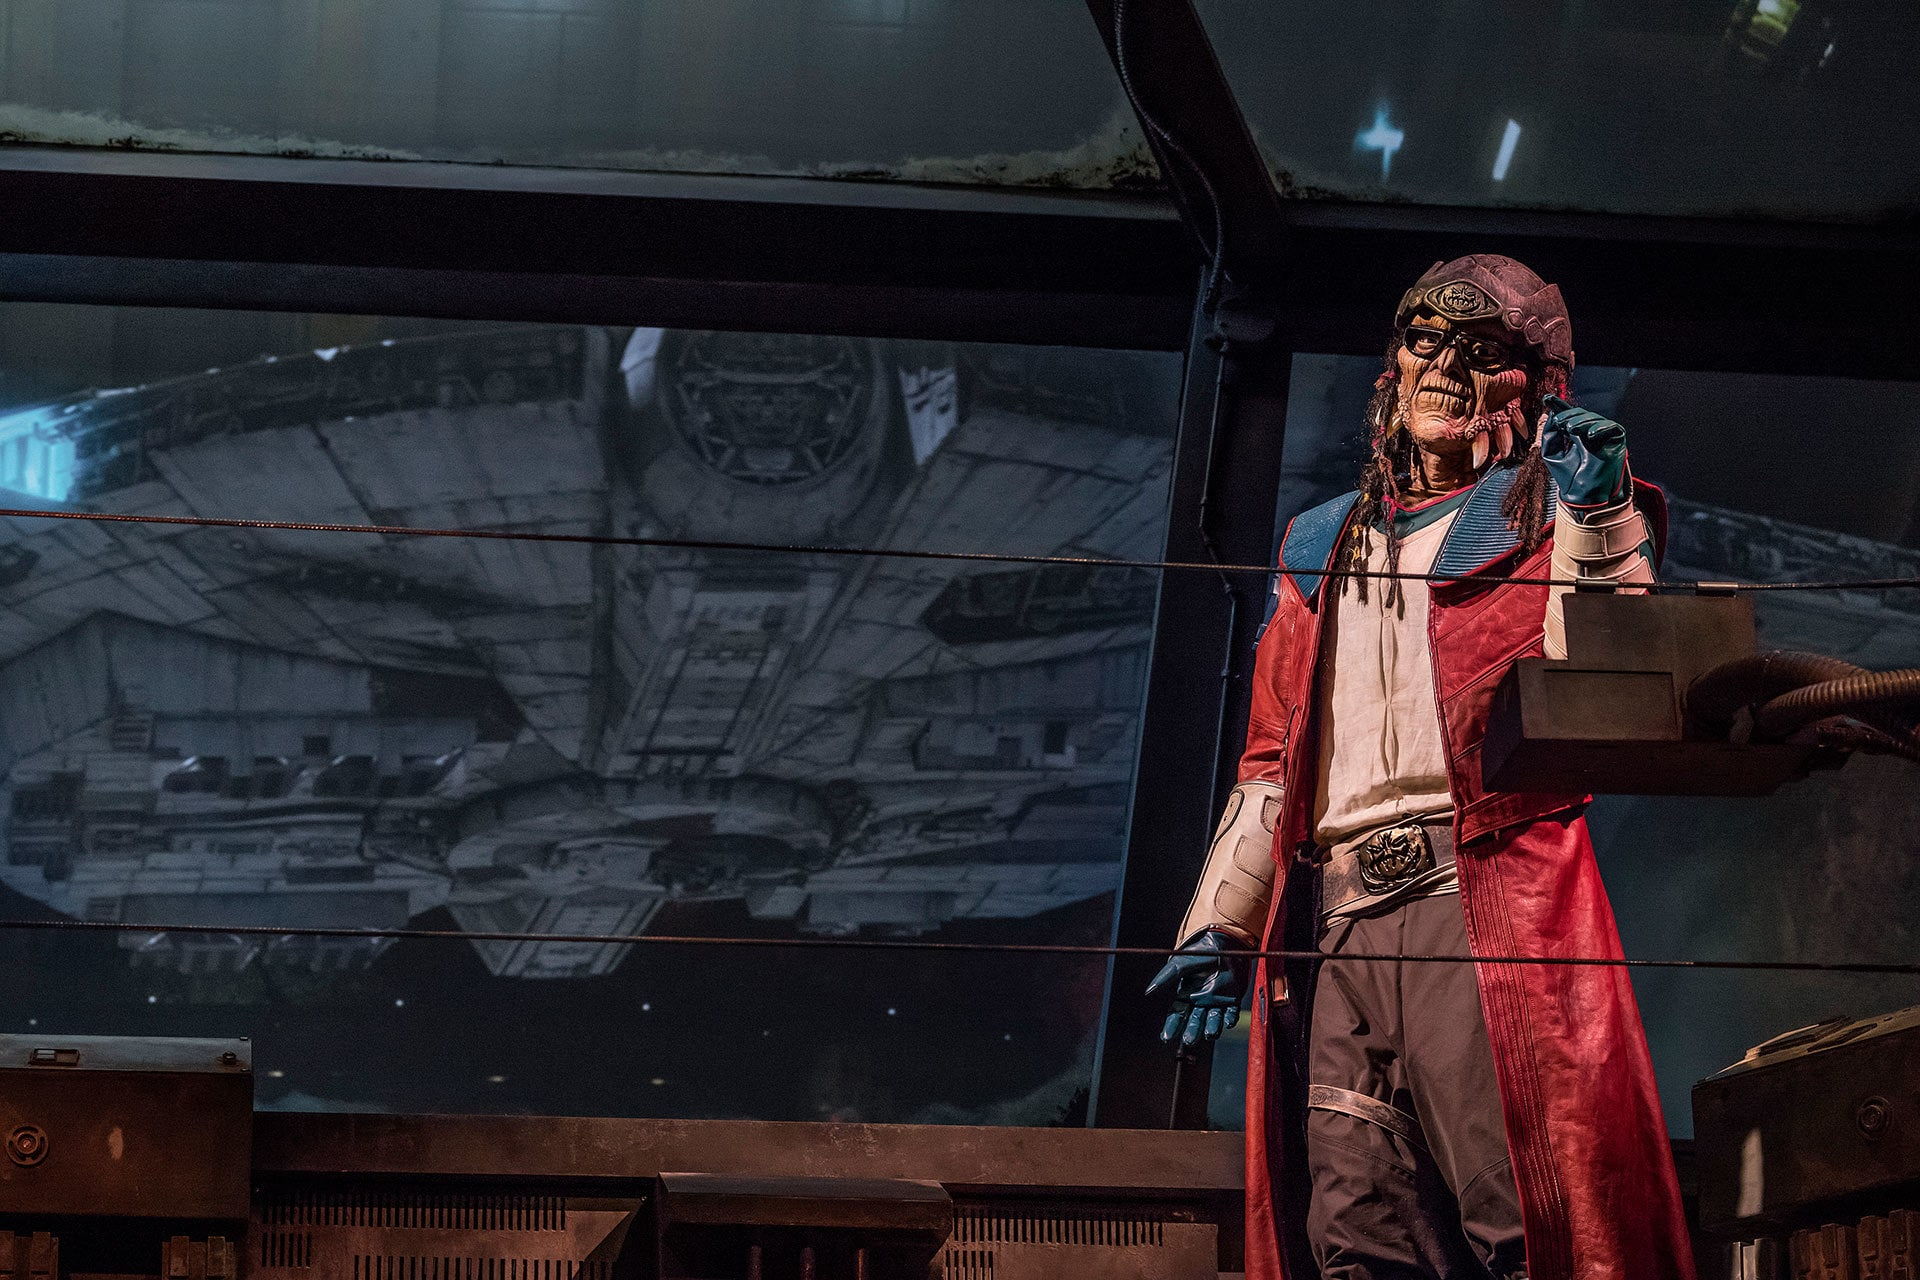 xThe notorious Weequay pirate, Hondo Ohnaka, gives guests their mission prior to boarding Millennium Falcon: Smugglers Run.